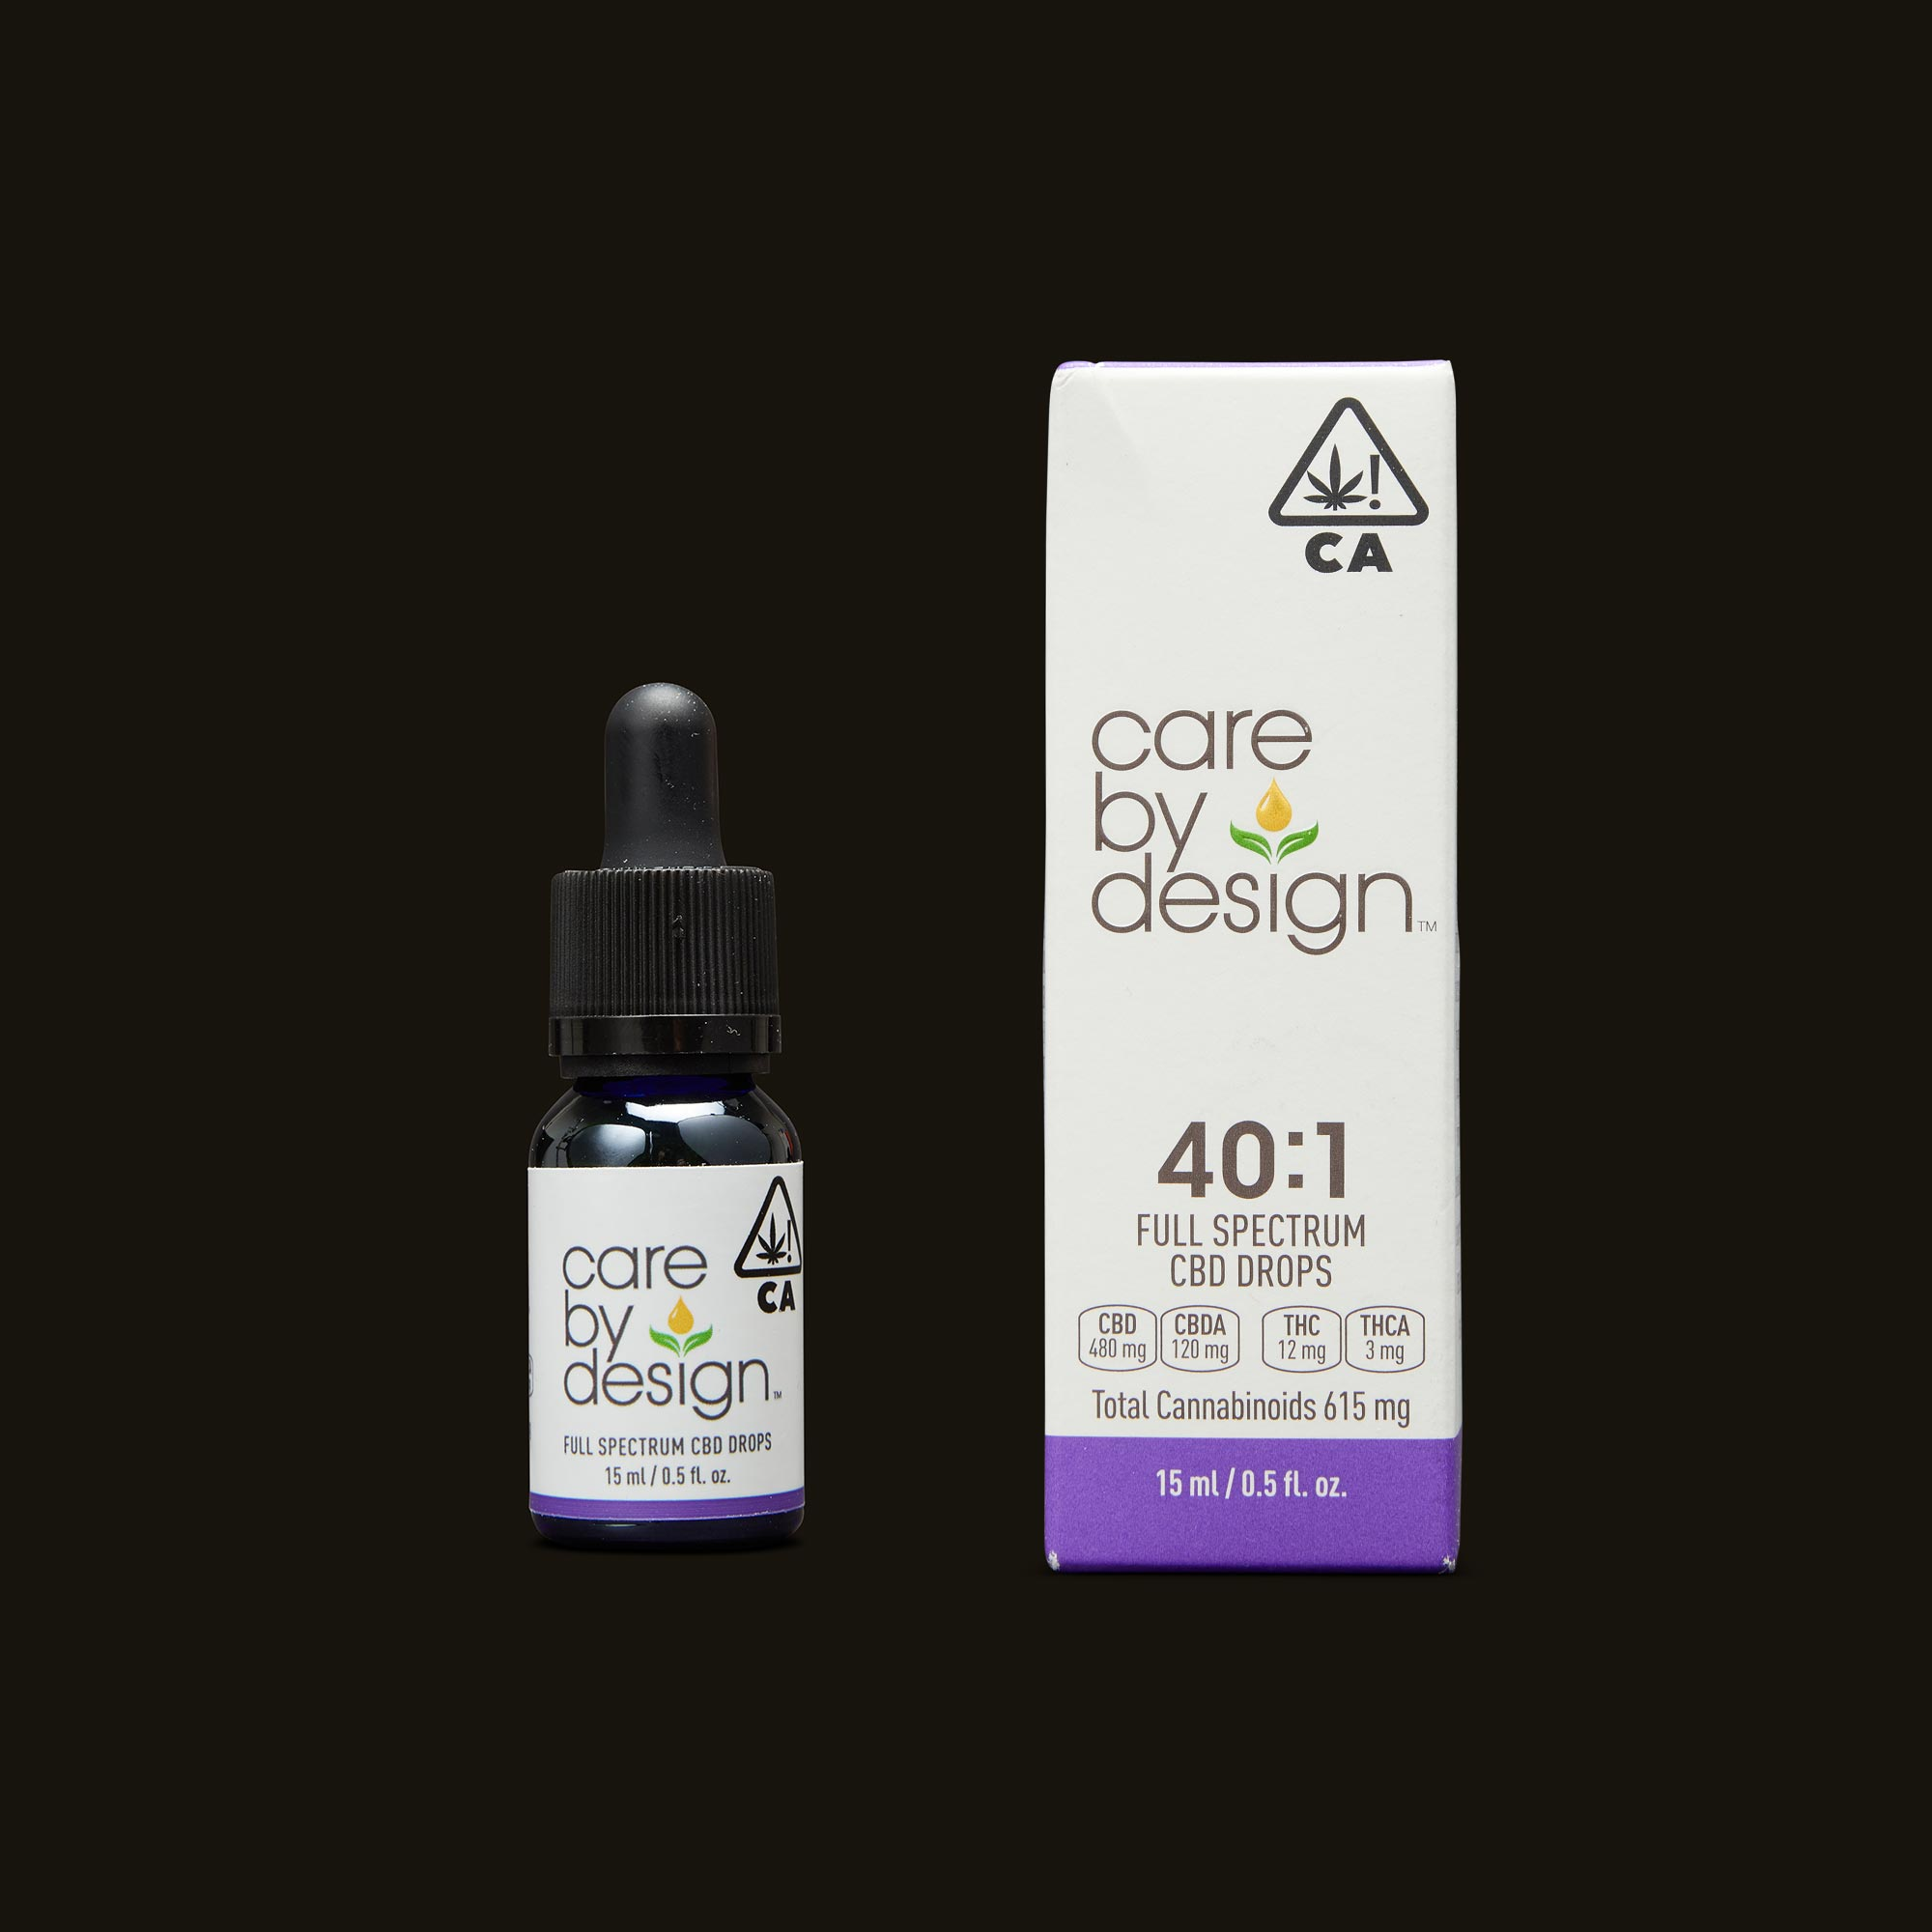 Care By Design 40:1 Full Spectrum CBD Drops - 0.5oz Tincture and Packaging